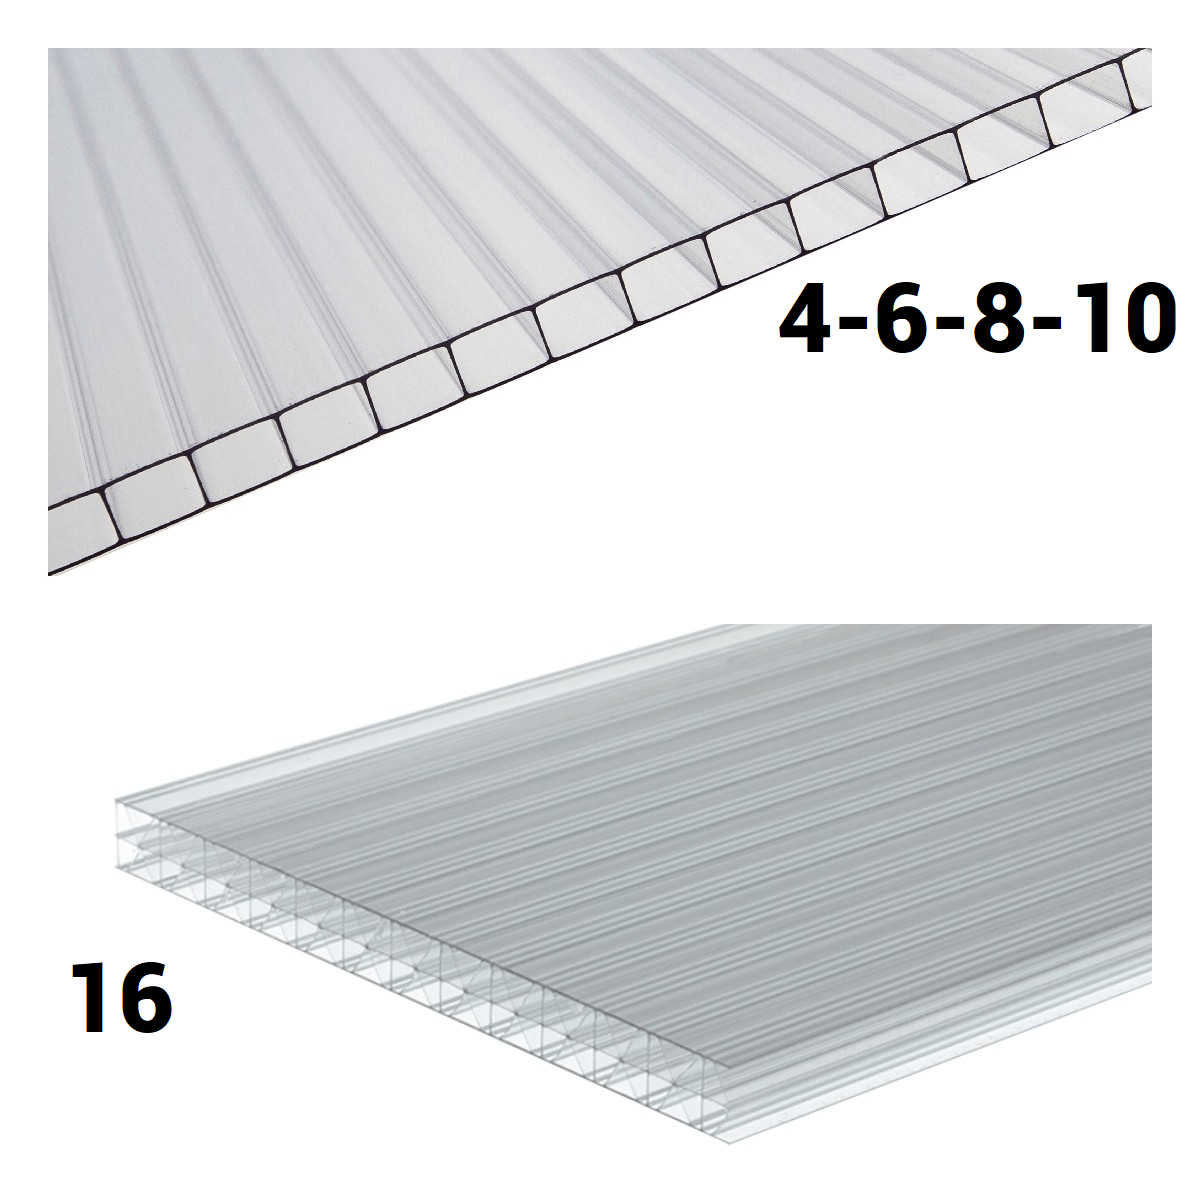 4mm 6mm 8mm 10mm 16mm Polycarbonate Roofing Sheets UV Protection